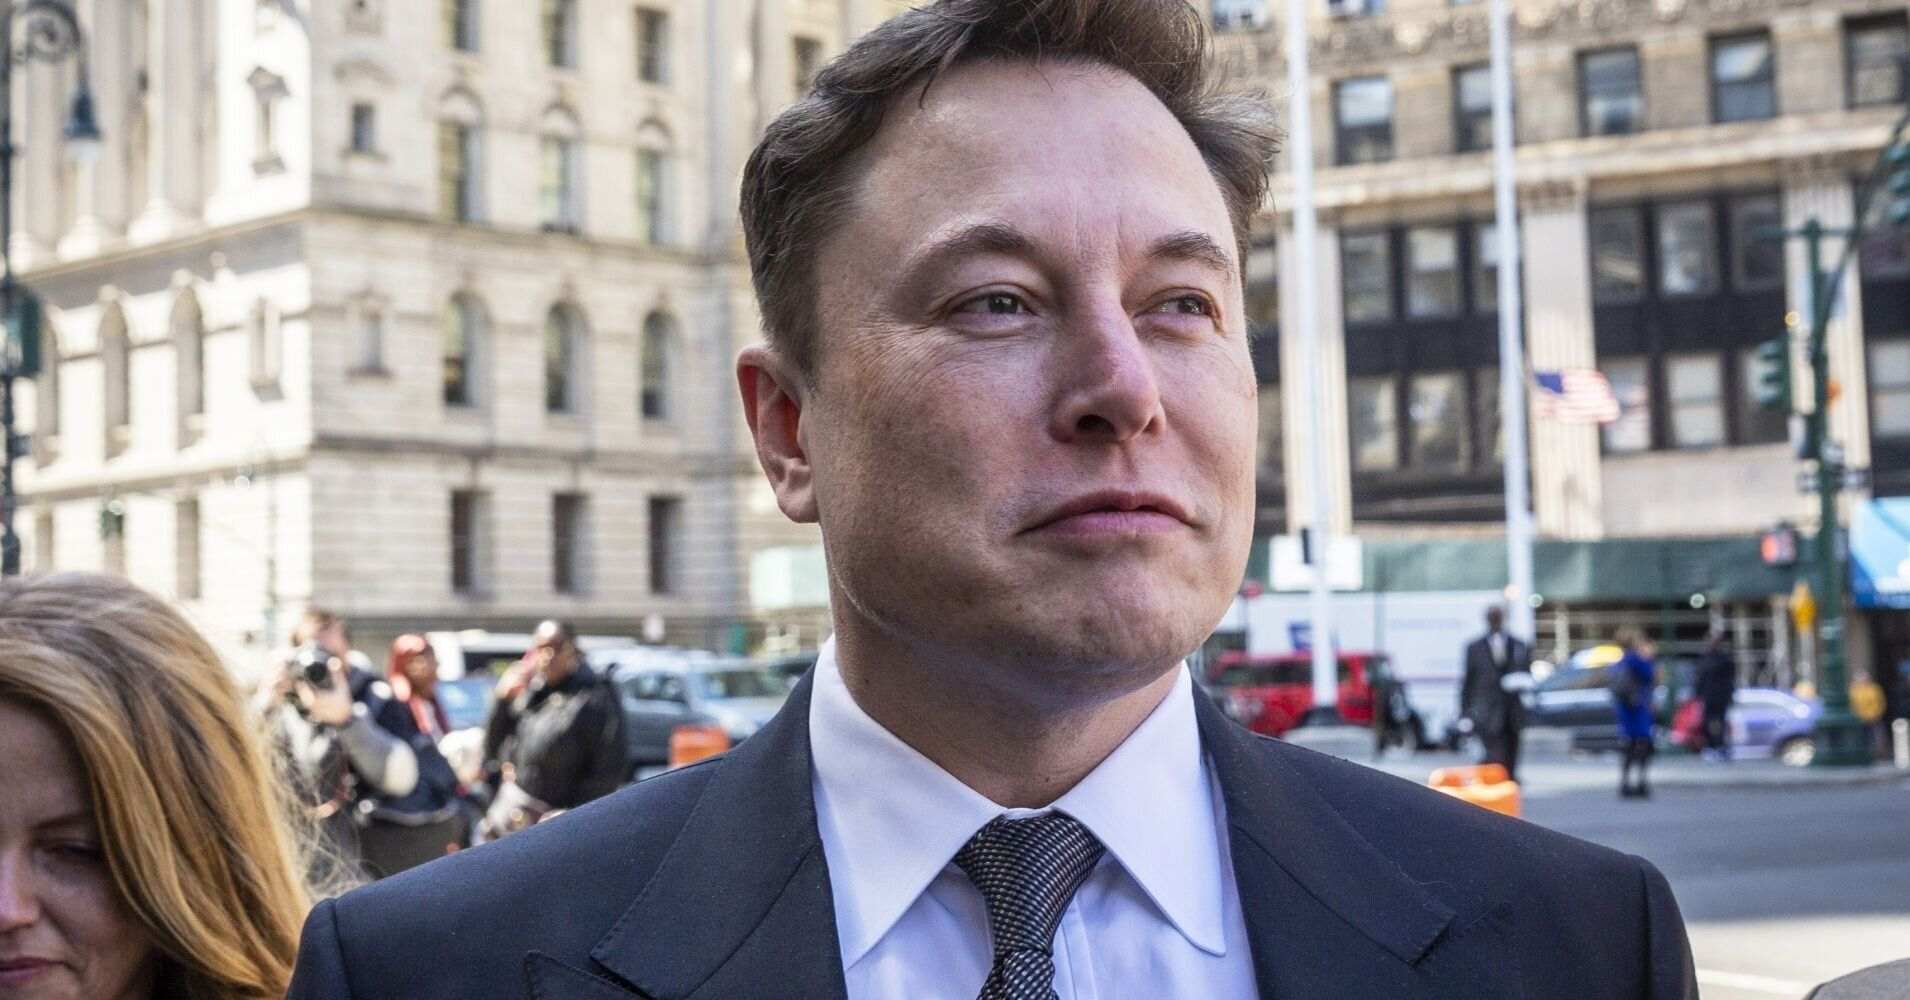 The two parties originally settled the charges in September, but the SEC later sued Musk saying he violated the terms of that agreement.